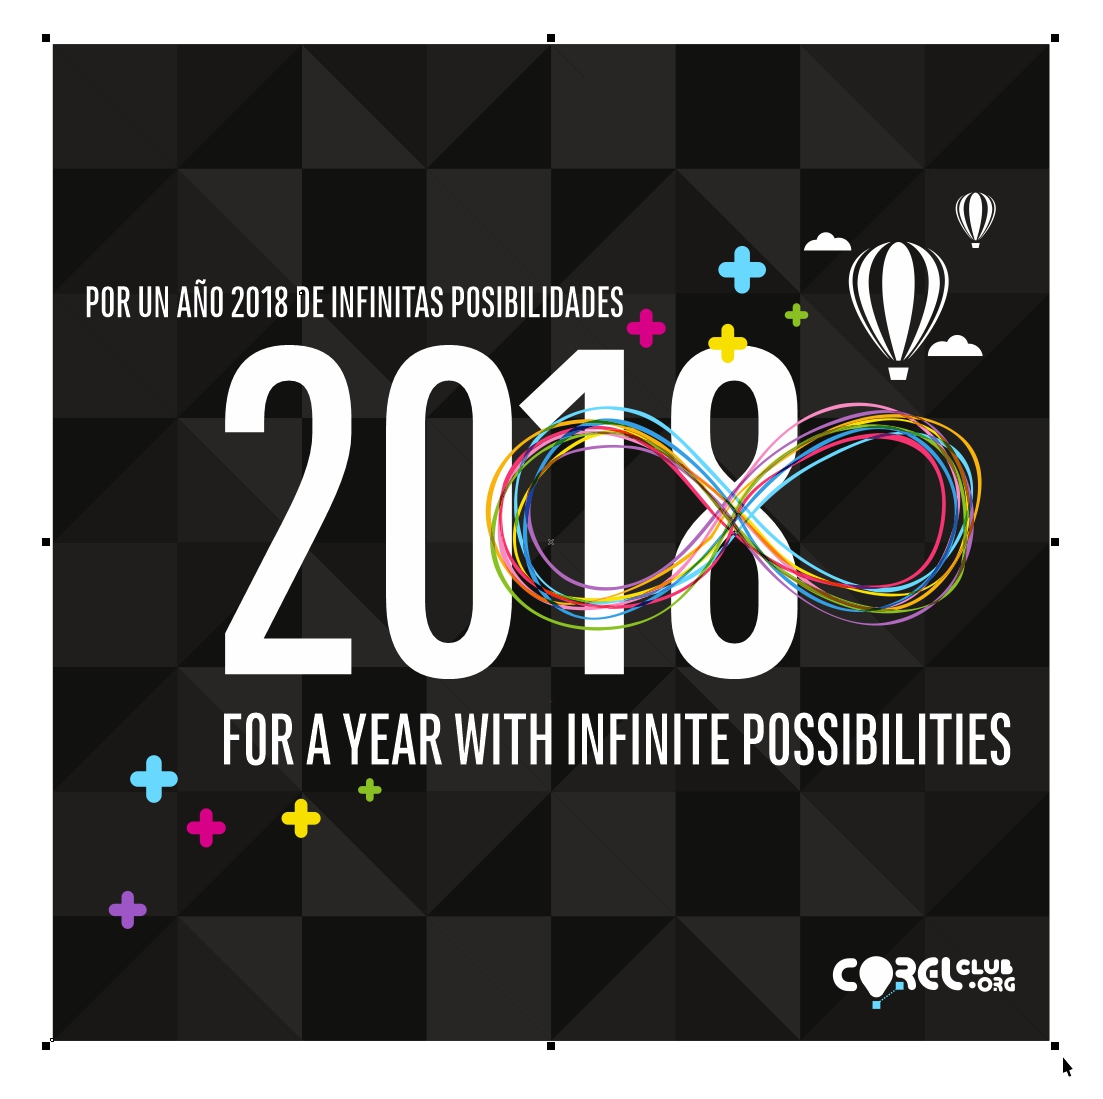 HAPPY-COREL-YEAR-2018-FROM-CORELCLUB.jpg